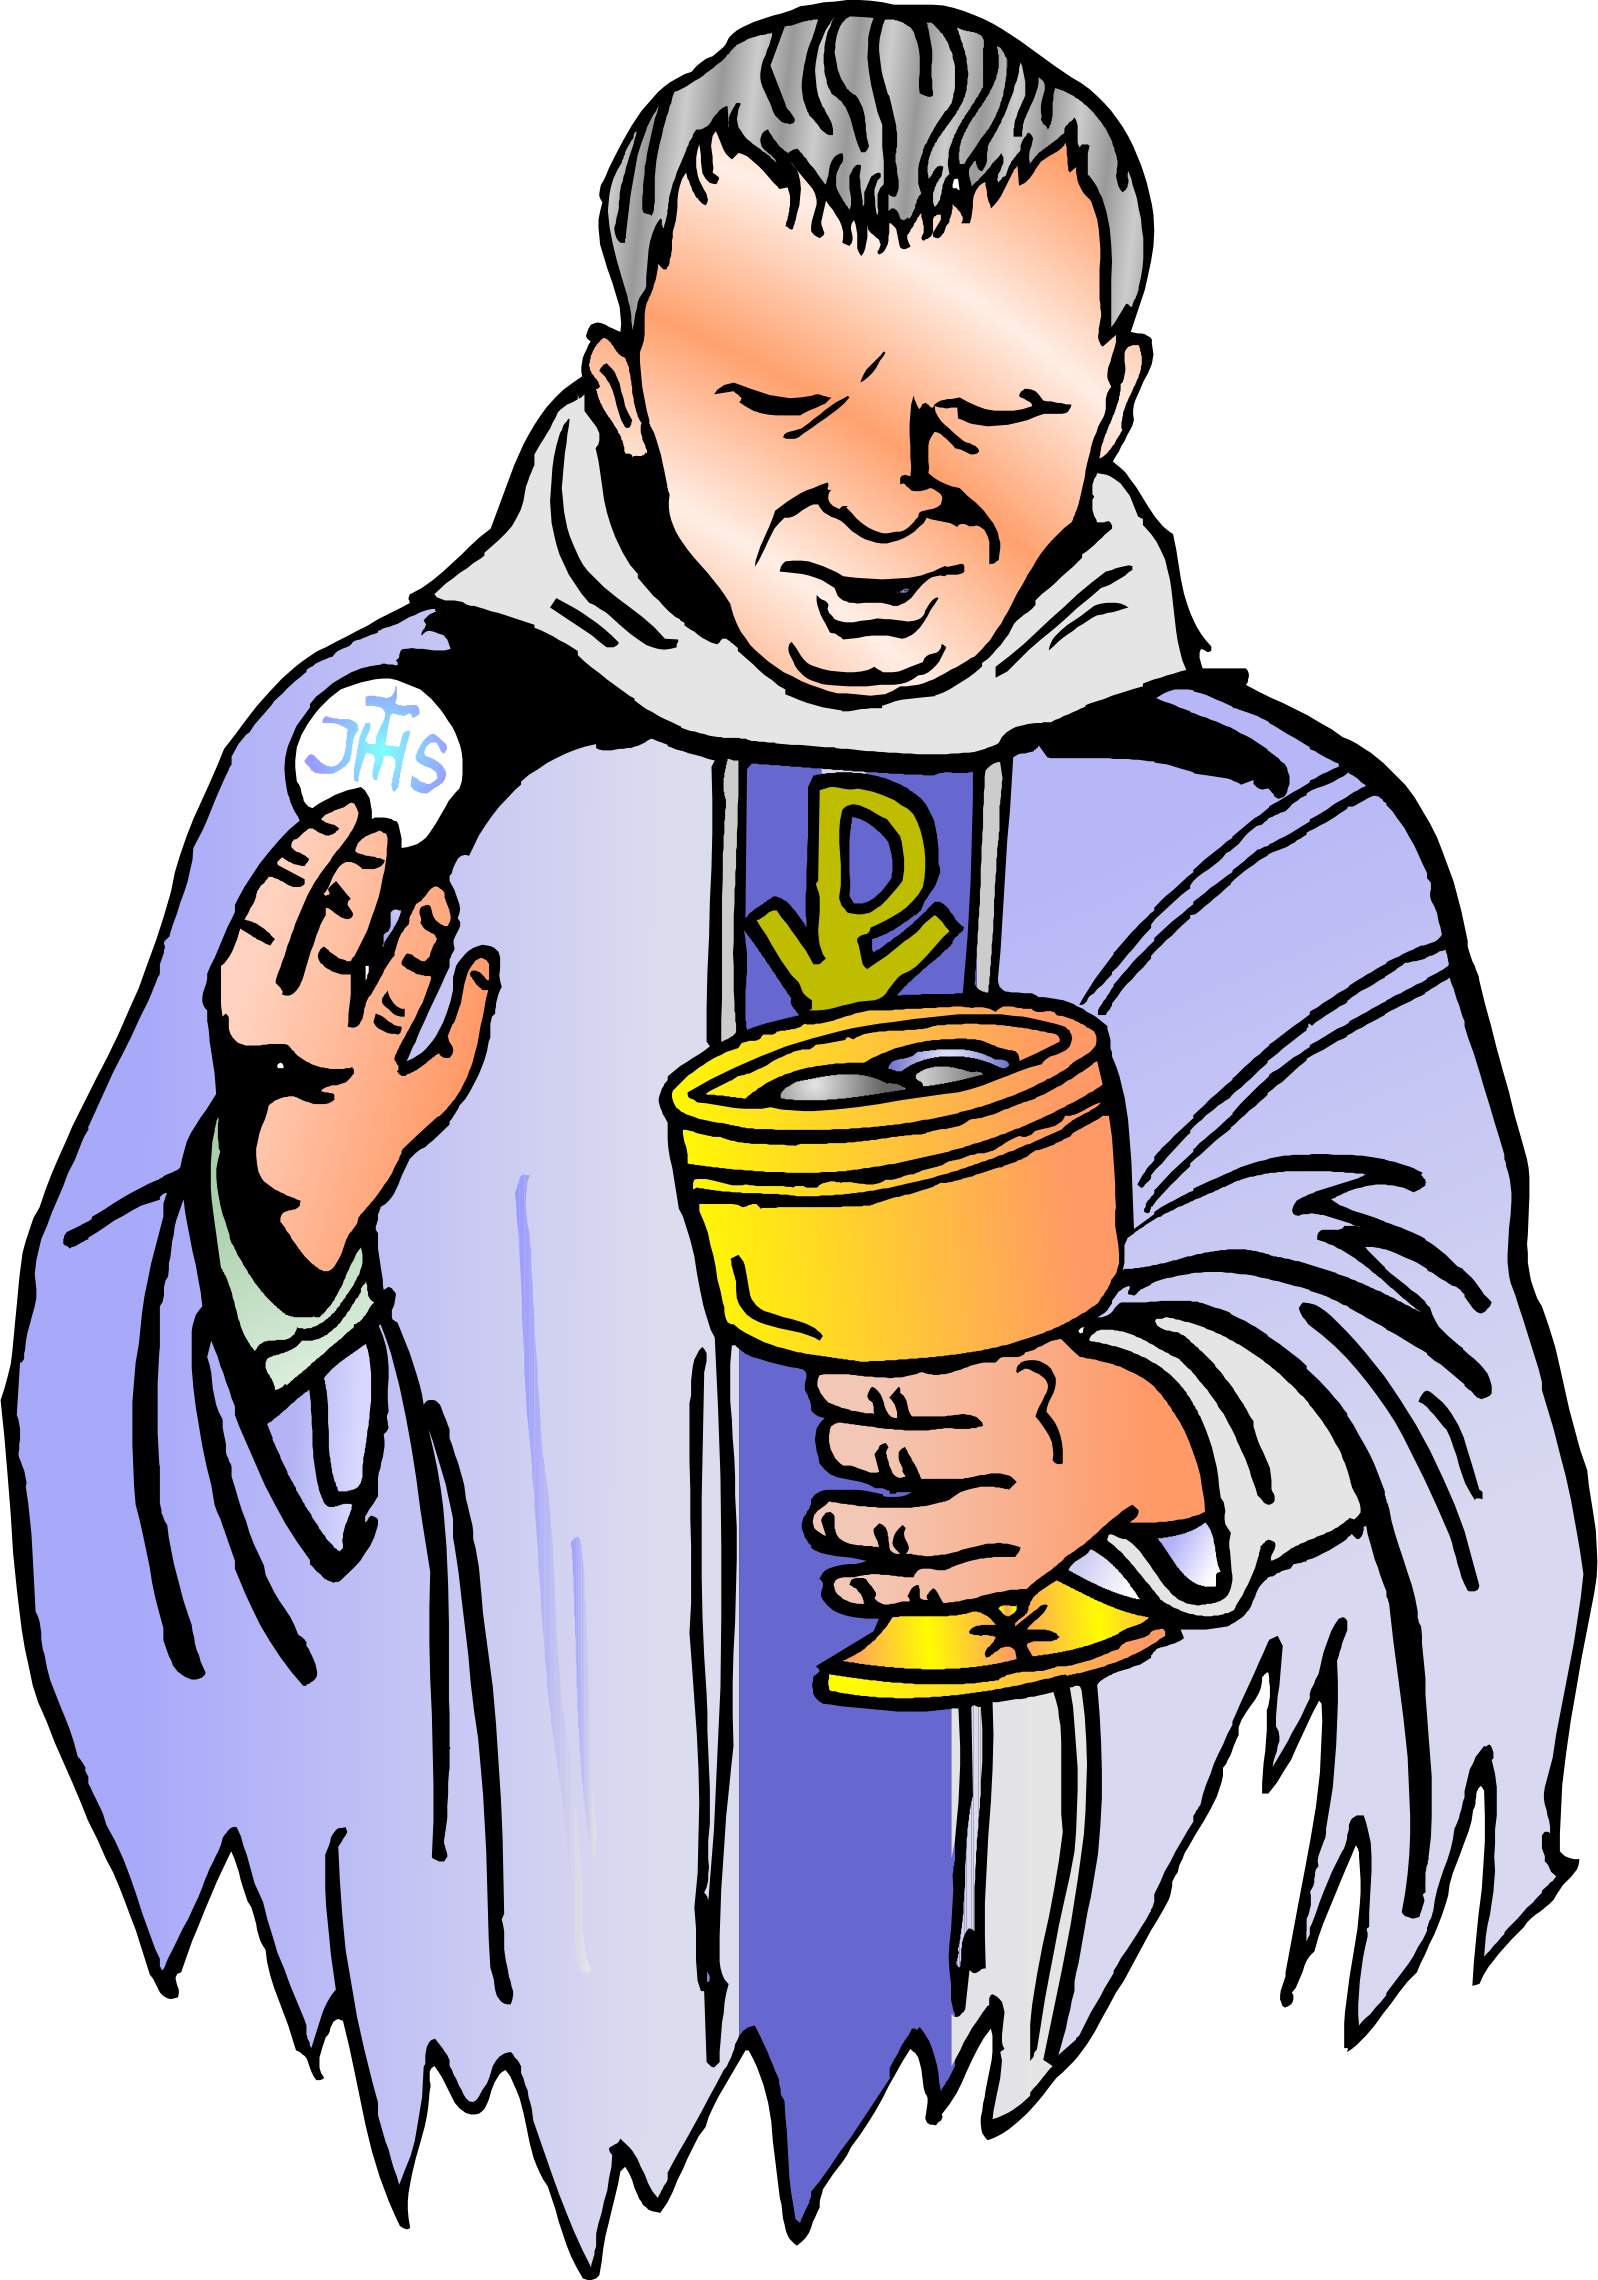 Priest clipart free clip art royalty free Priest Vector Clipart image - Free stock photo - Public ... clip art royalty free